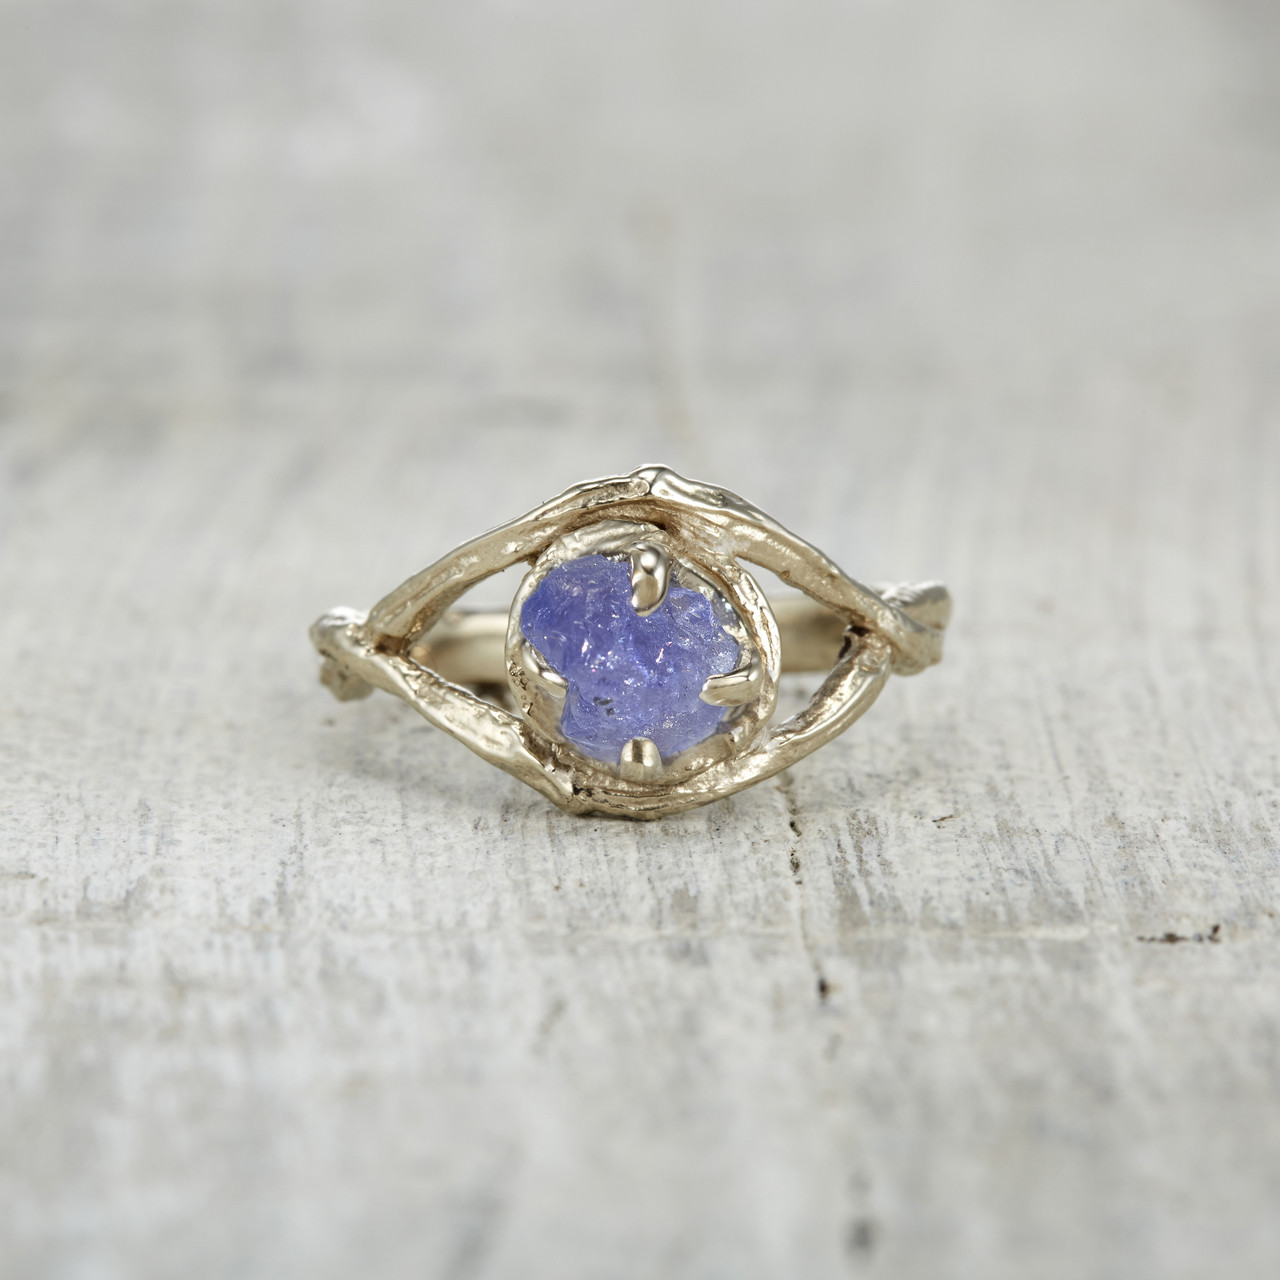 gemstones tanzanite topic rings please pictures or engagement share